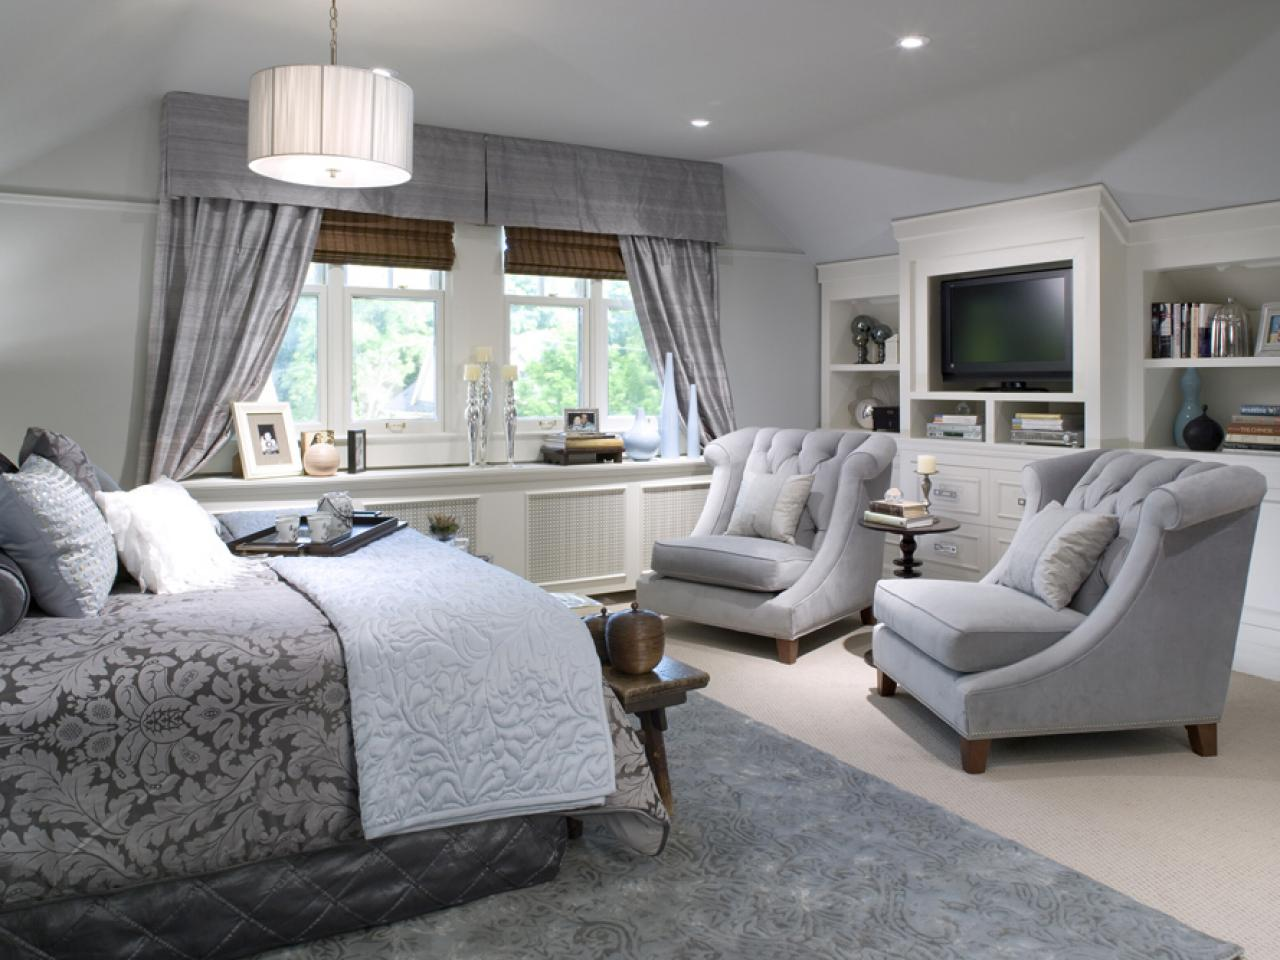 Comfortable Chairs for Bedroom Sitting Area | HomesFeed